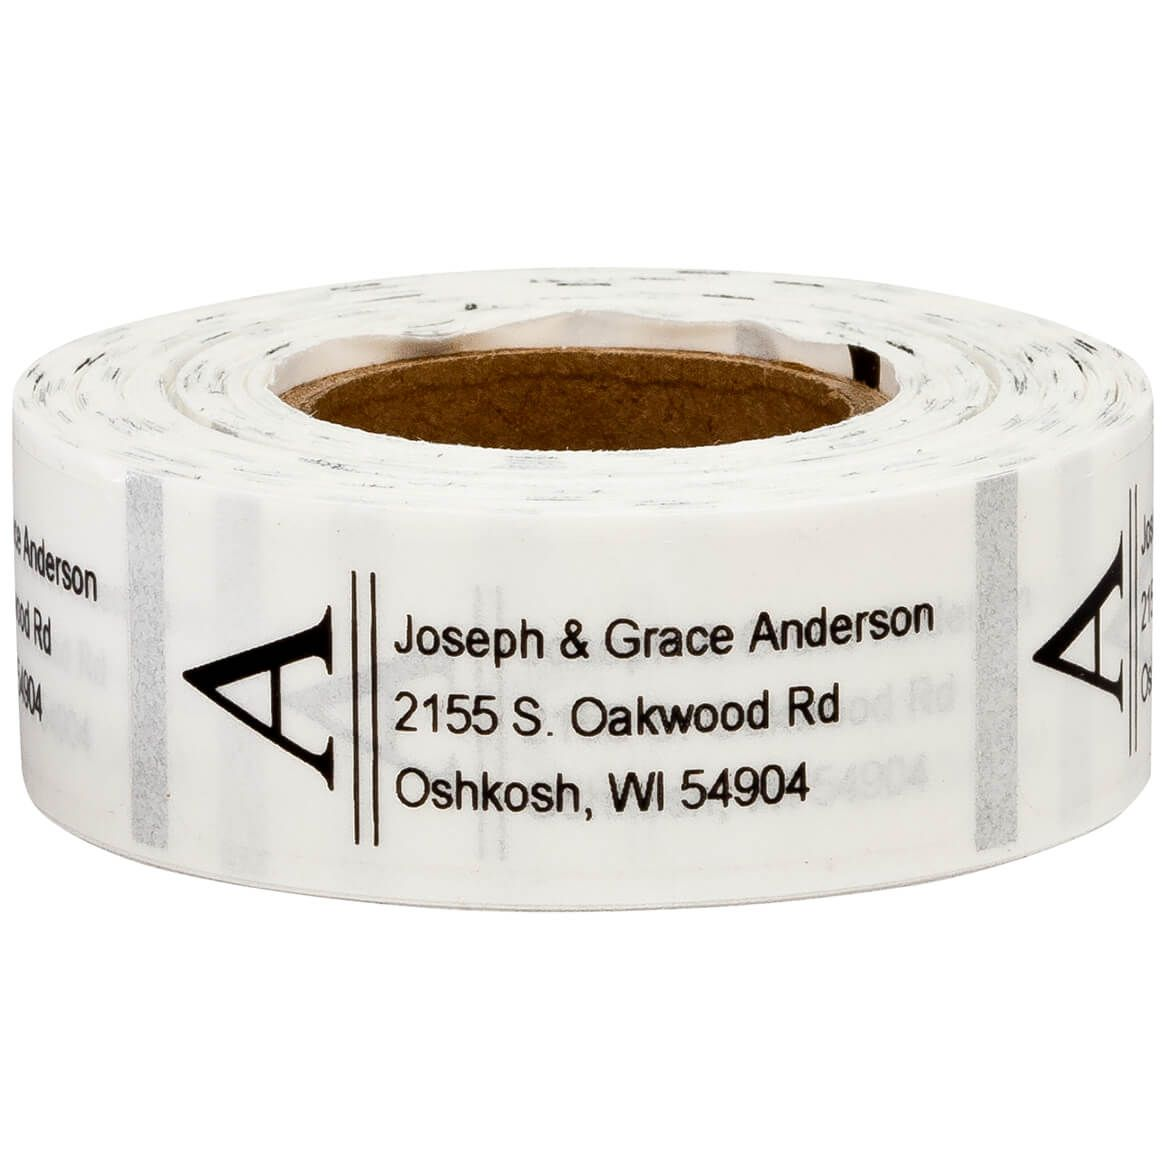 Personalized Bold Initial Address Labels, 200-351401